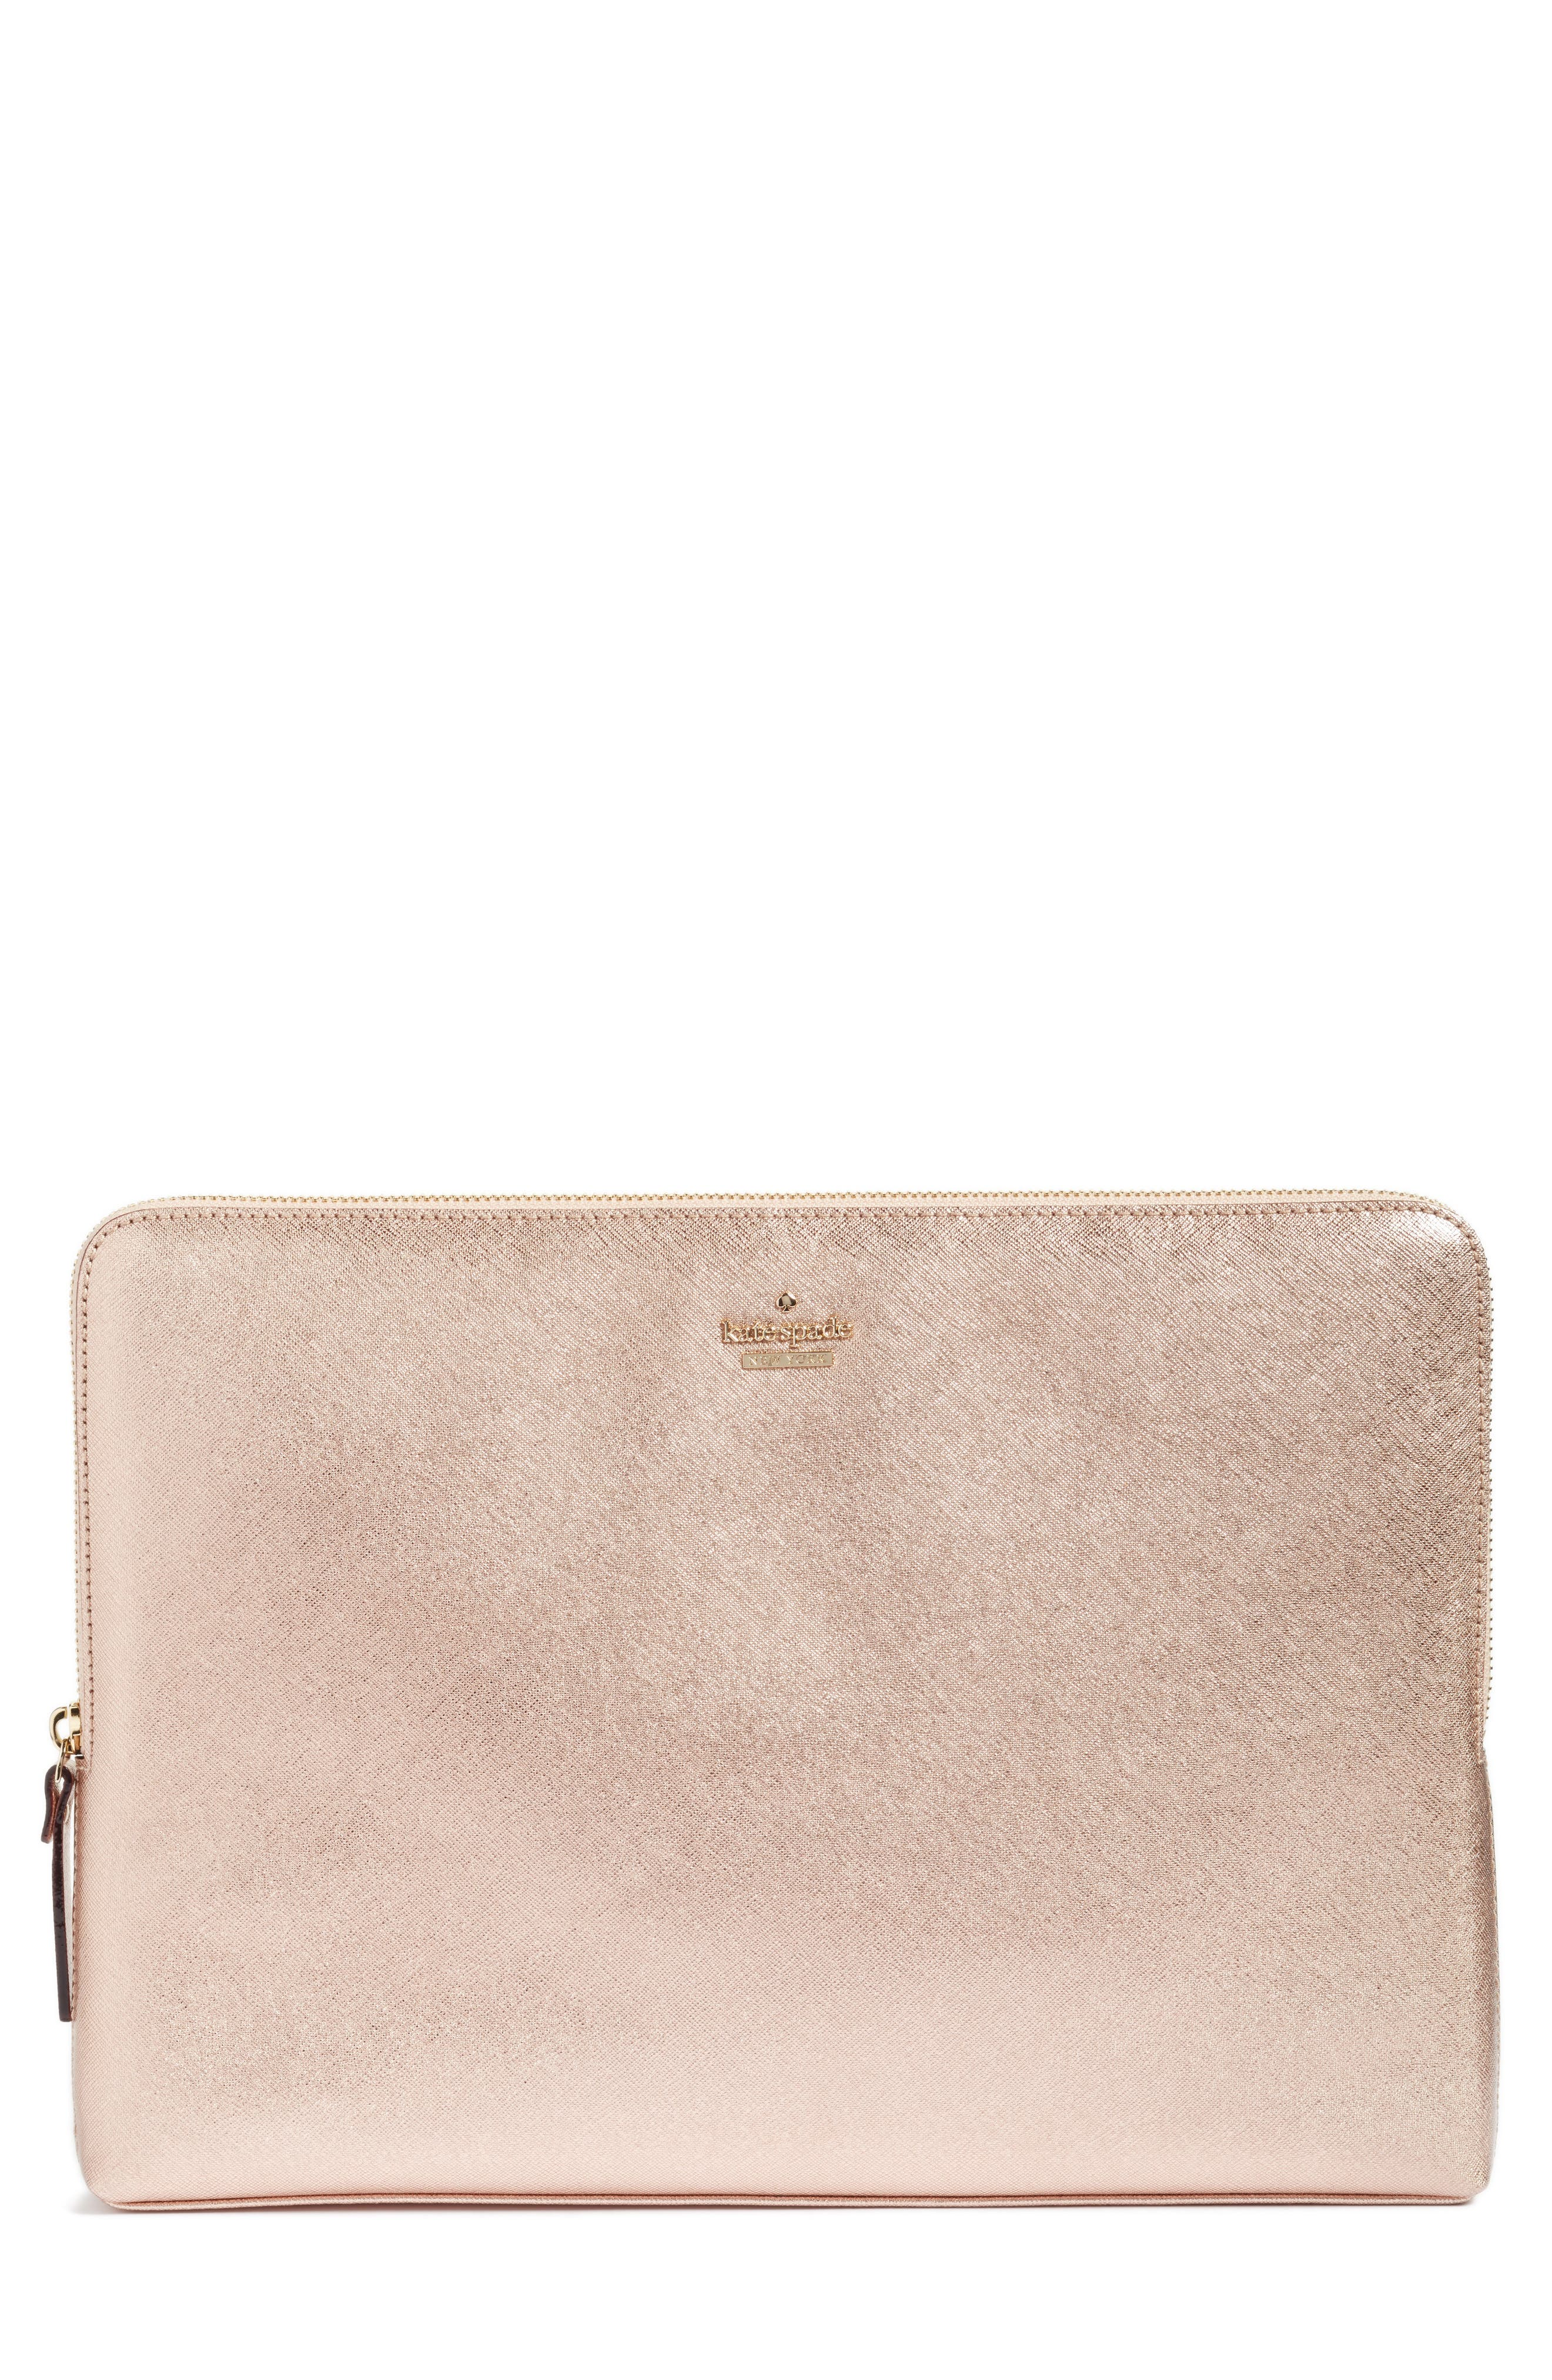 "kate spade new york metallic 13"" leather laptop sleeve"